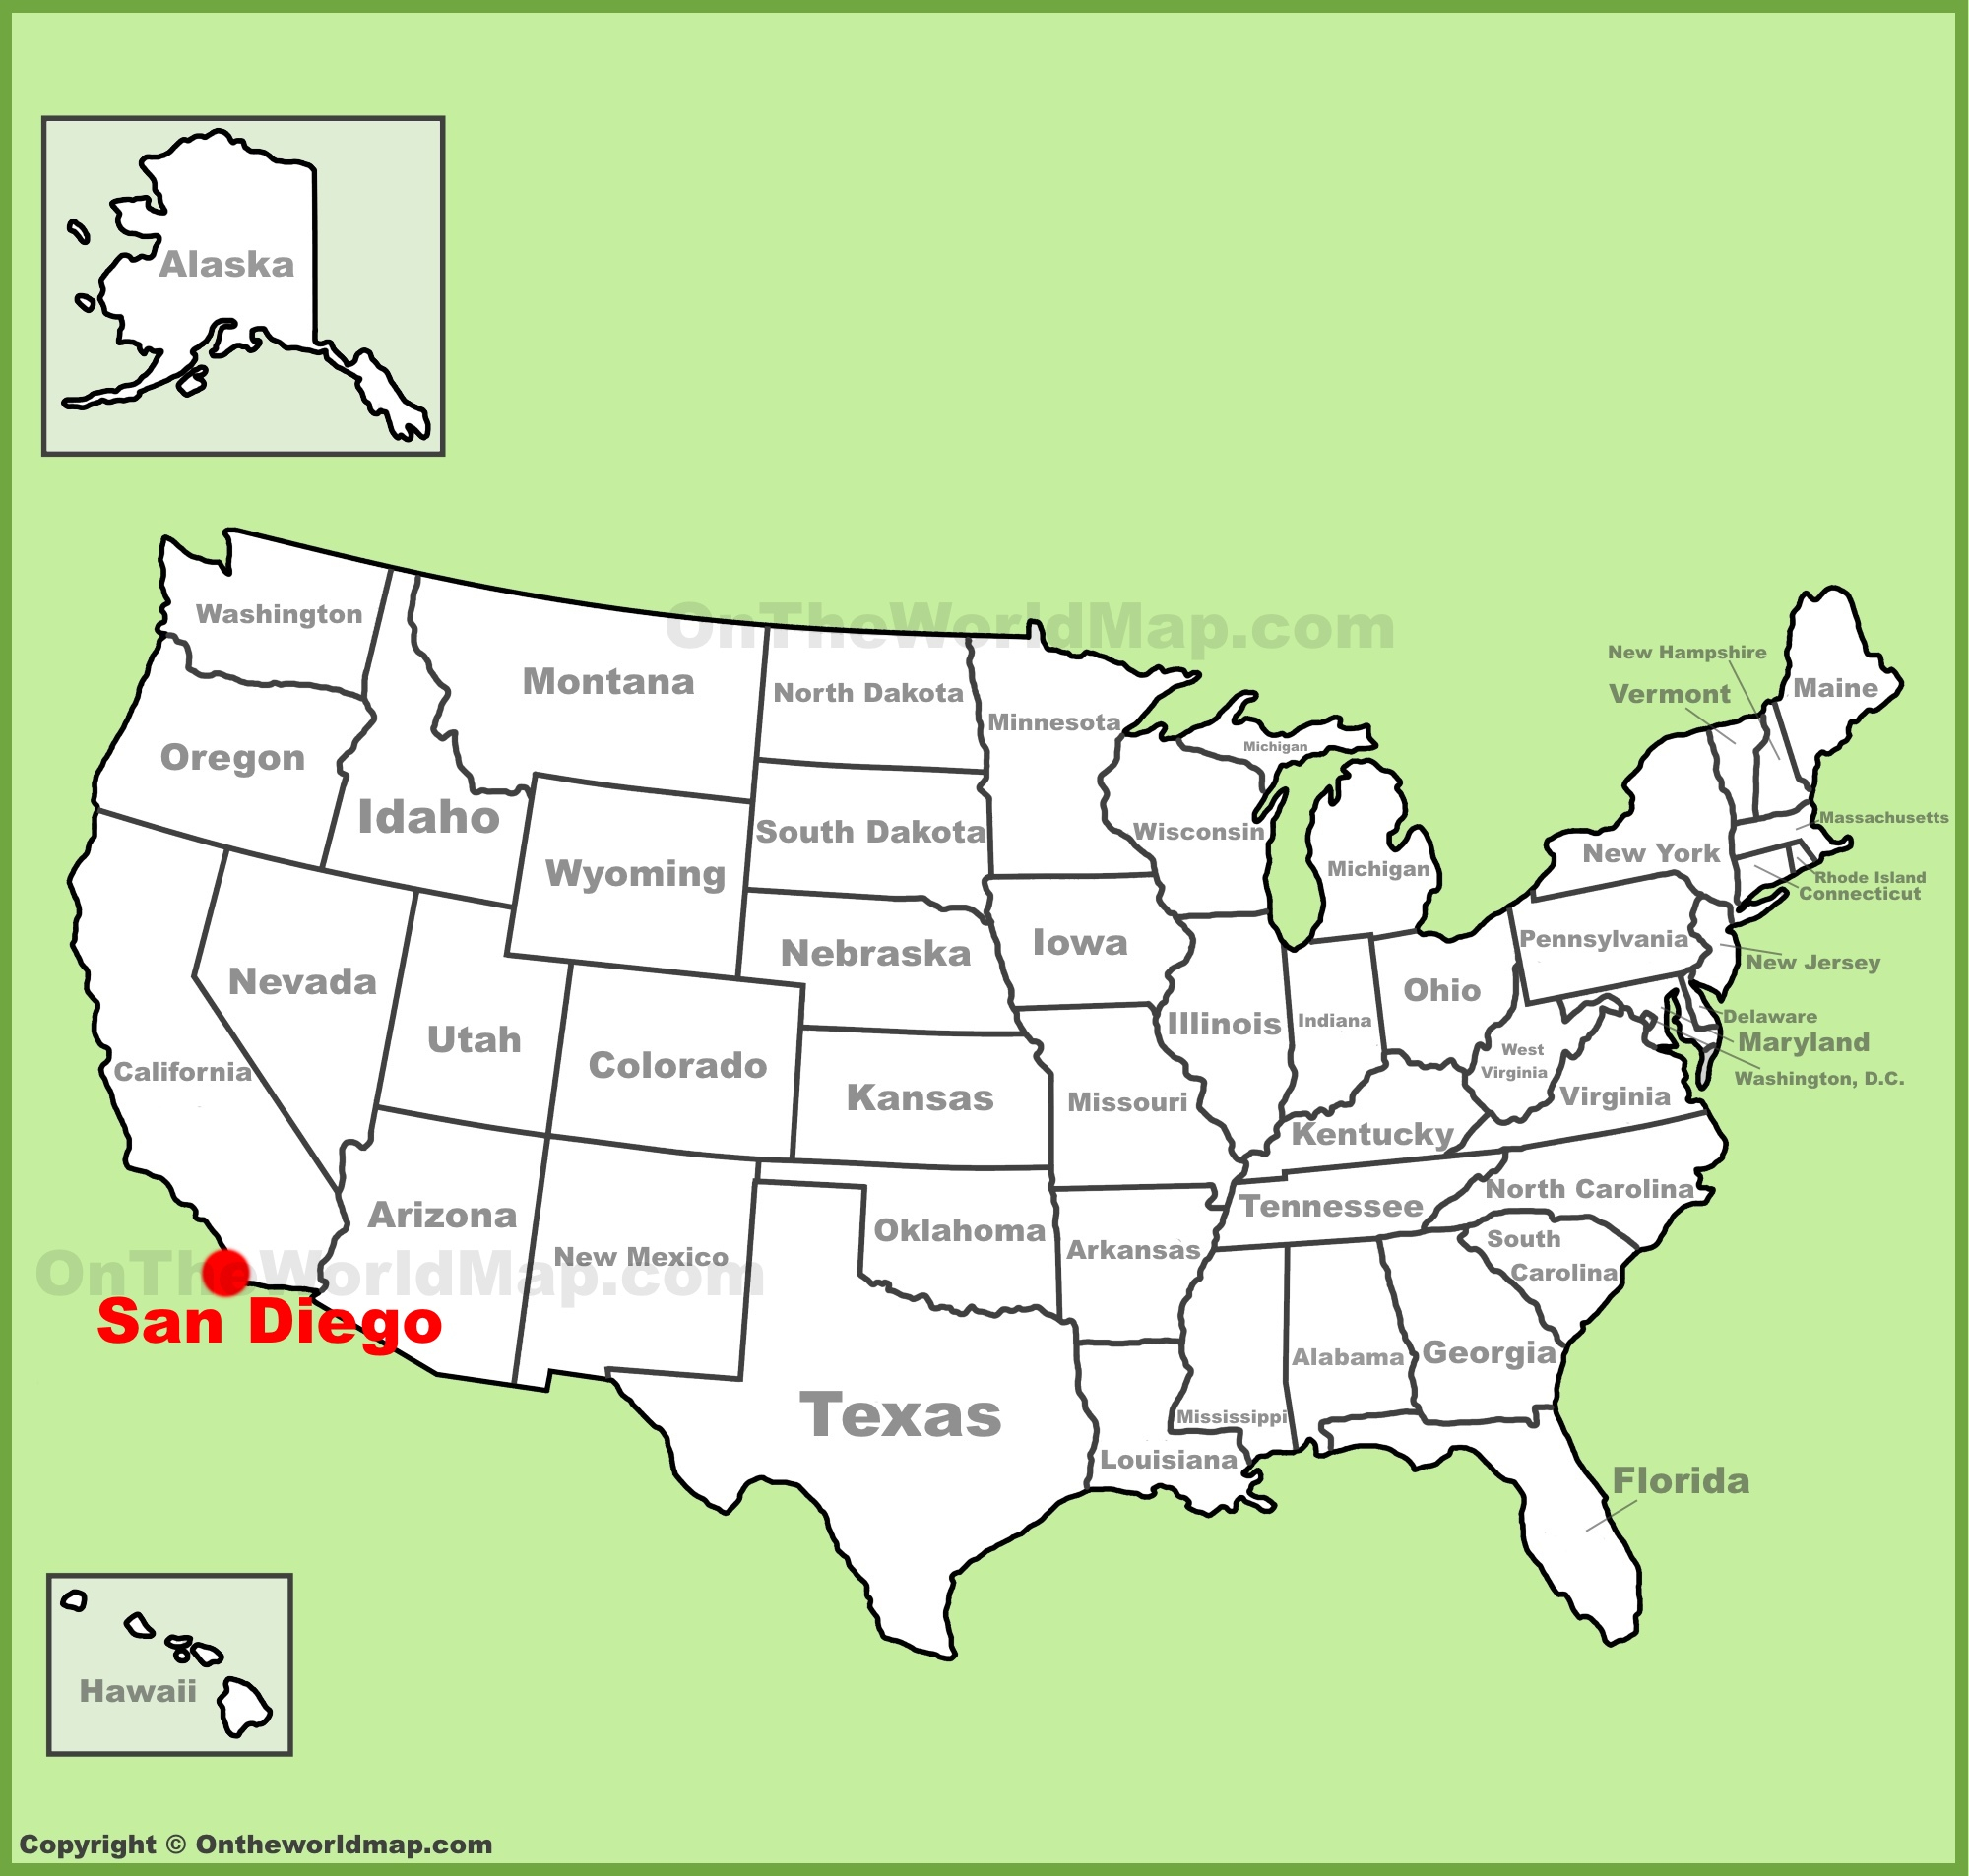 San Diego Location On The U.s. Map - Where Is San Diego California On A Map